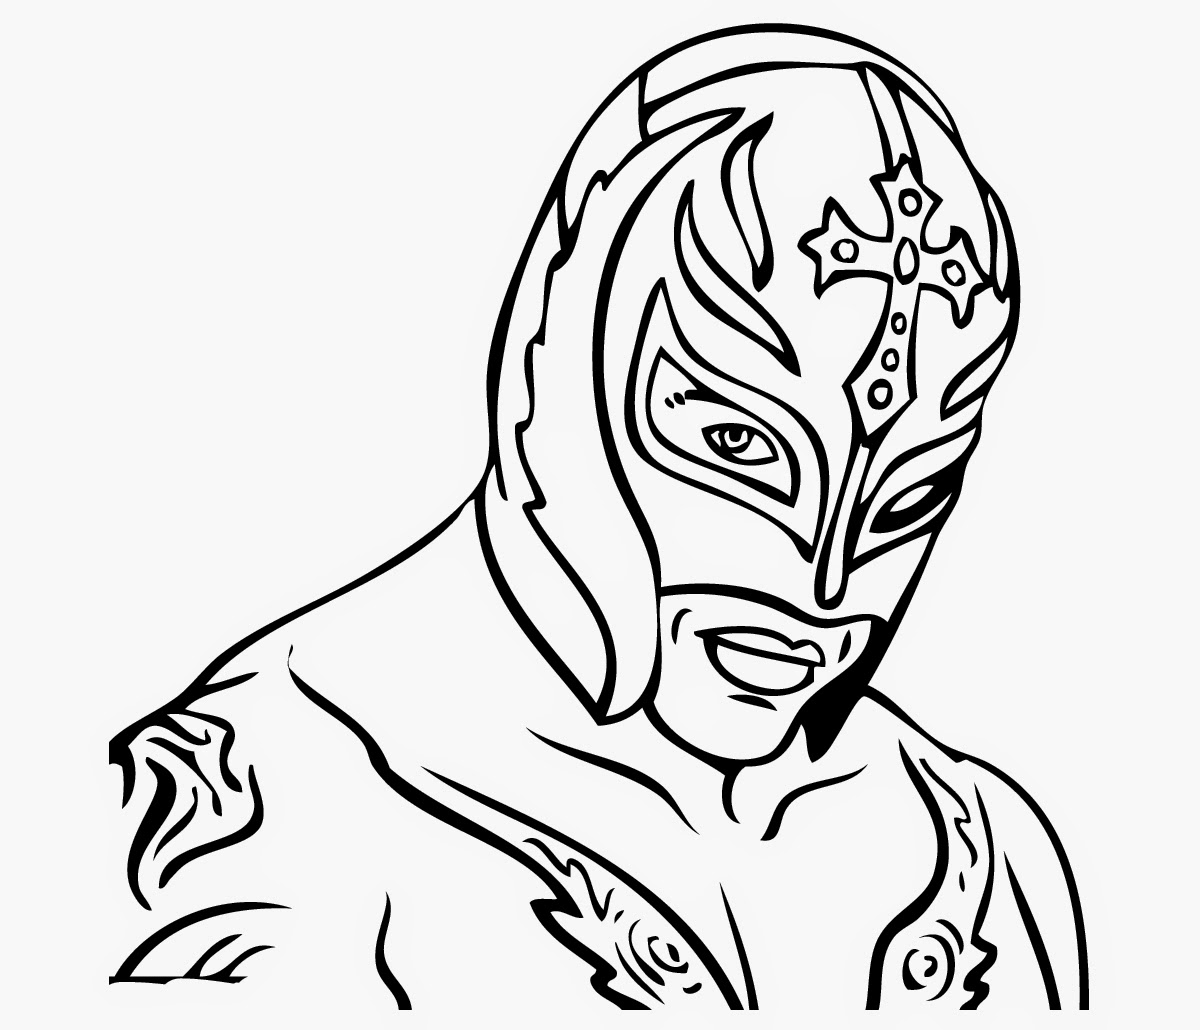 Wwe Ryback Drawing at GetDrawings.com | Free for personal use Wwe ...